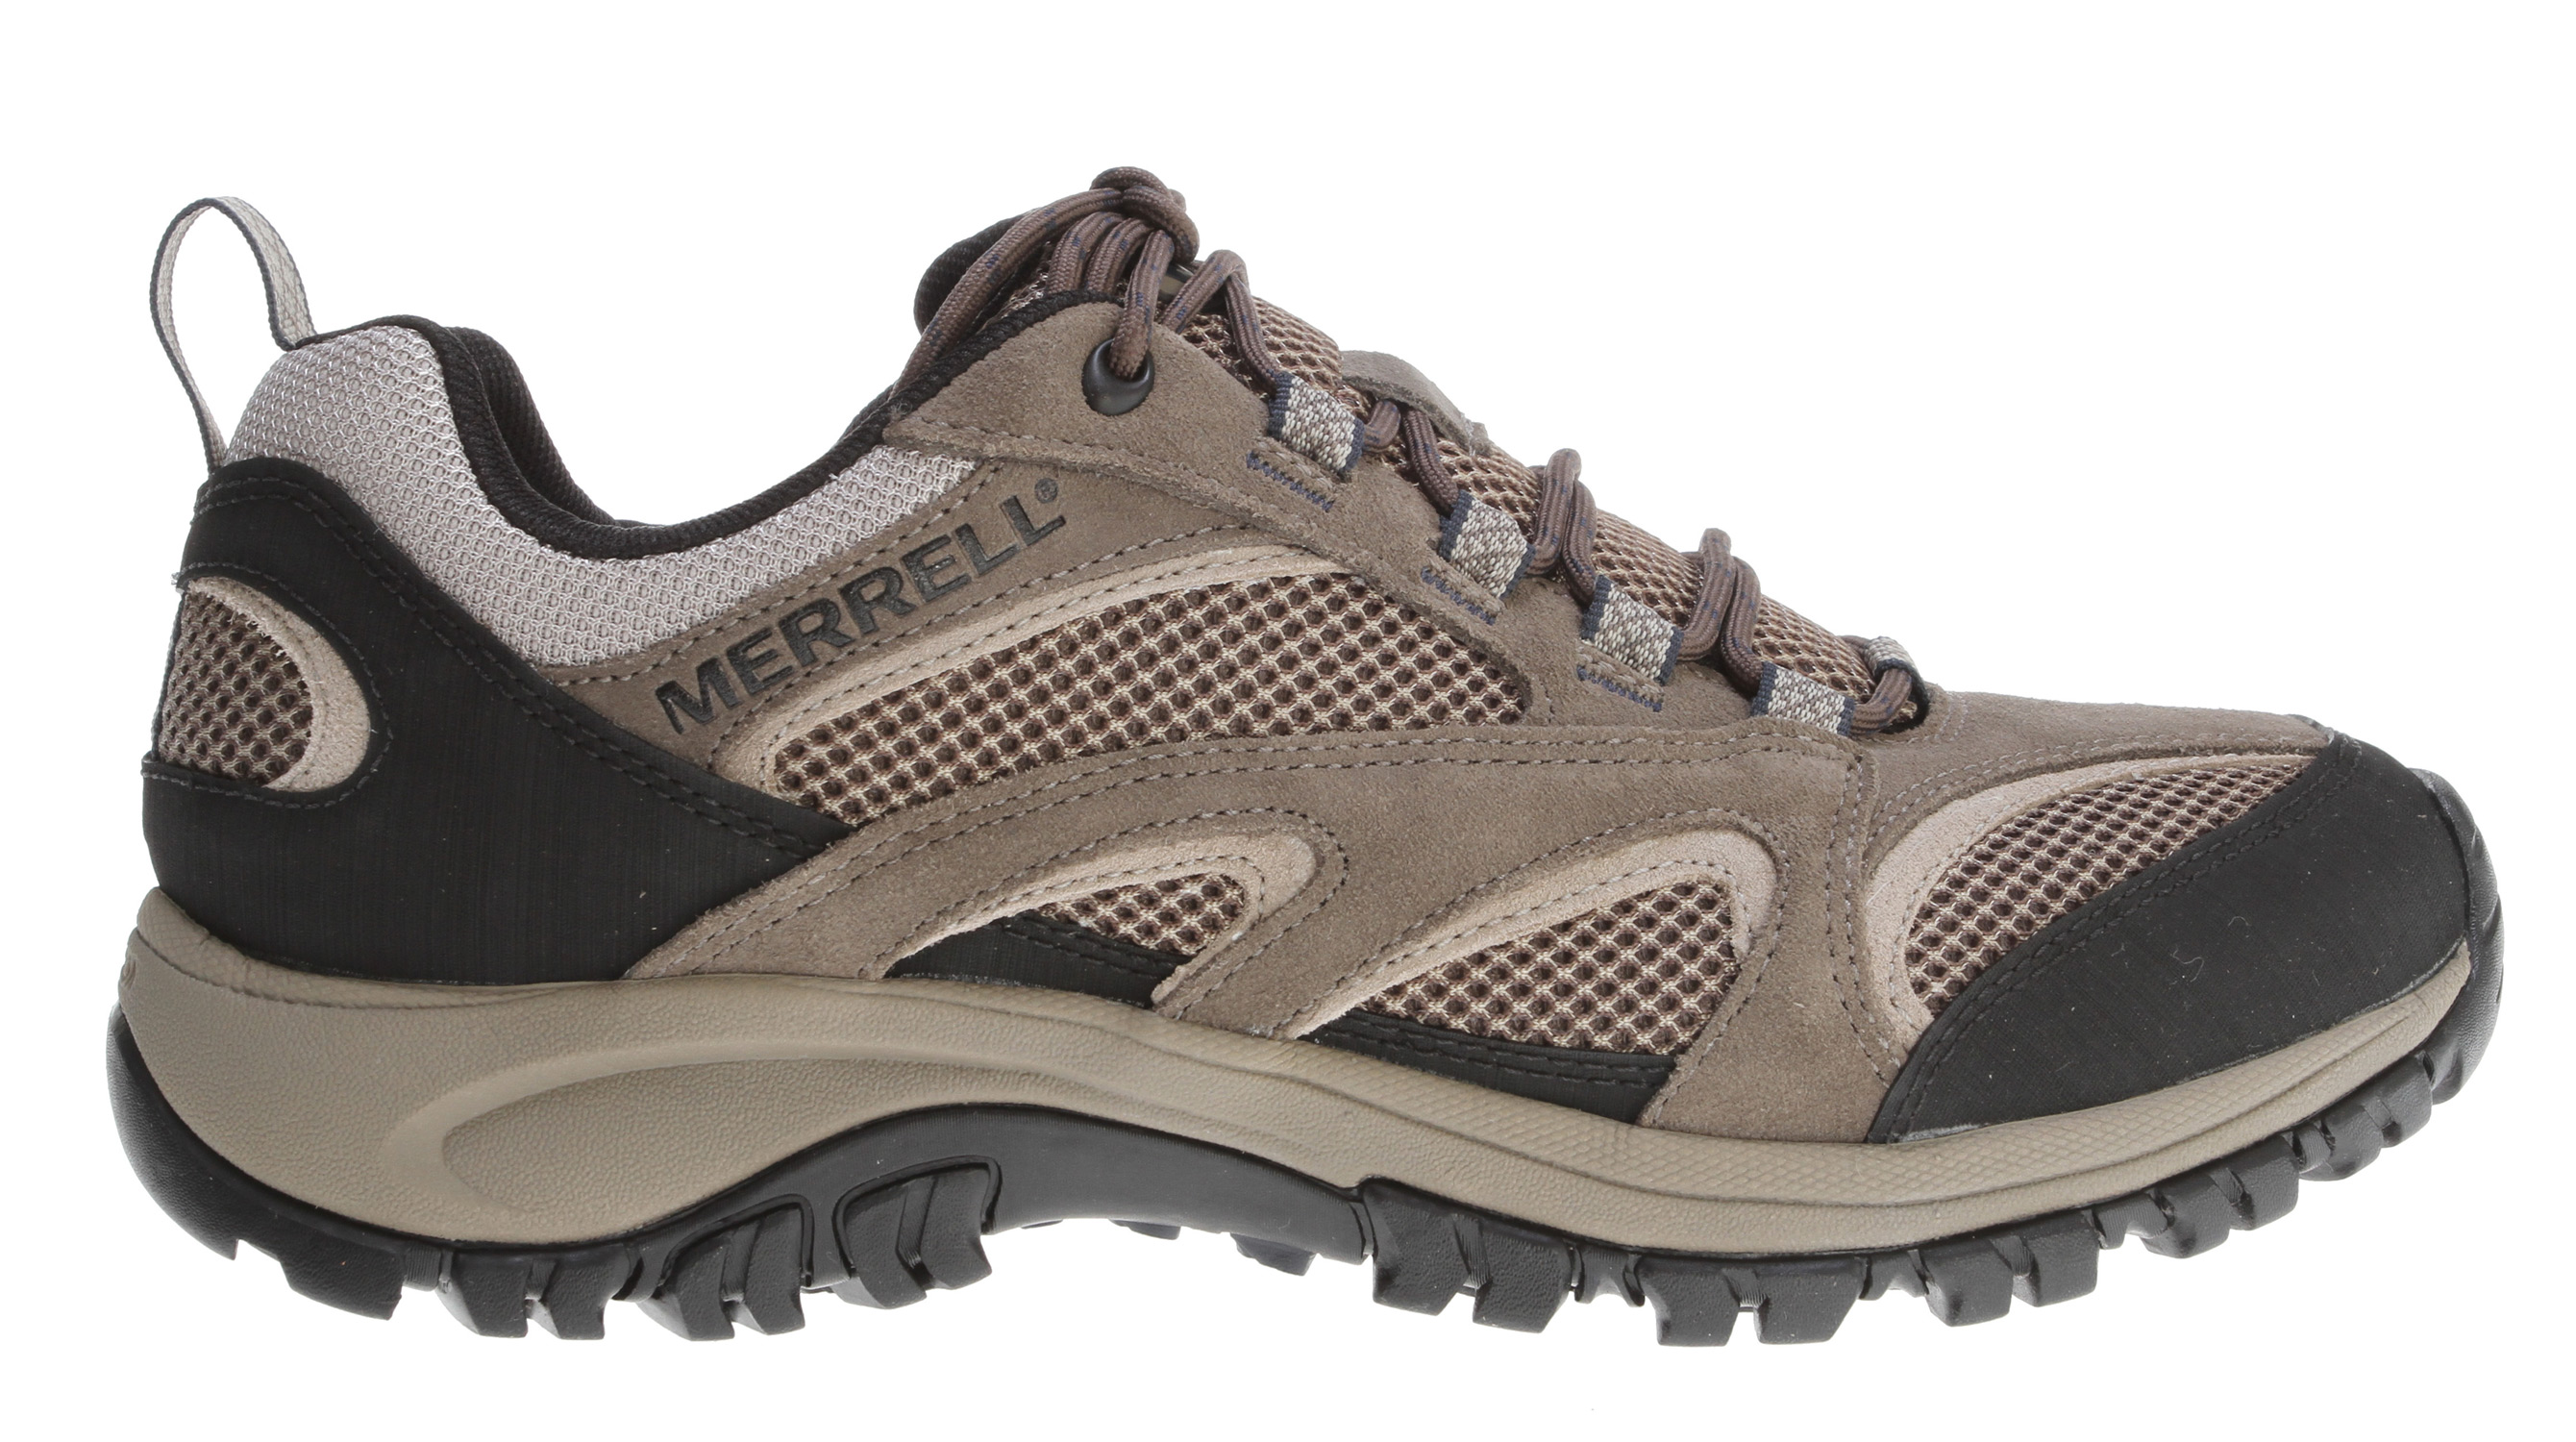 Camp and Hike Ramble on in these low profile multisport shoes. Plenty of support and durable midsole cushioning, with a pared down upper, it's got a supportive arch shank, flexible sole construction to keep your feet comfortable. Lightweight suede/mesh, anti-odor upper with bellows tongue keeps out debris.Key Features of the Merrell Phoenix Vent Low Hiking Shoes: Strobel construction offers flexibility and comfort Pig suede and mesh upper Low cut upper Bellows tongue keeps debris out Abrasion resistant toe cap and heel Mesh lining treated with Aegis antimicrobial solution Molded nylon arch shank Merrell air cushion in the heel absorbs shock and adds stability with an EVA midsole for cushioning Merrell Kamet Sole/ Sticky Rubber Men's Weight: 1lb 11ozs - $62.95